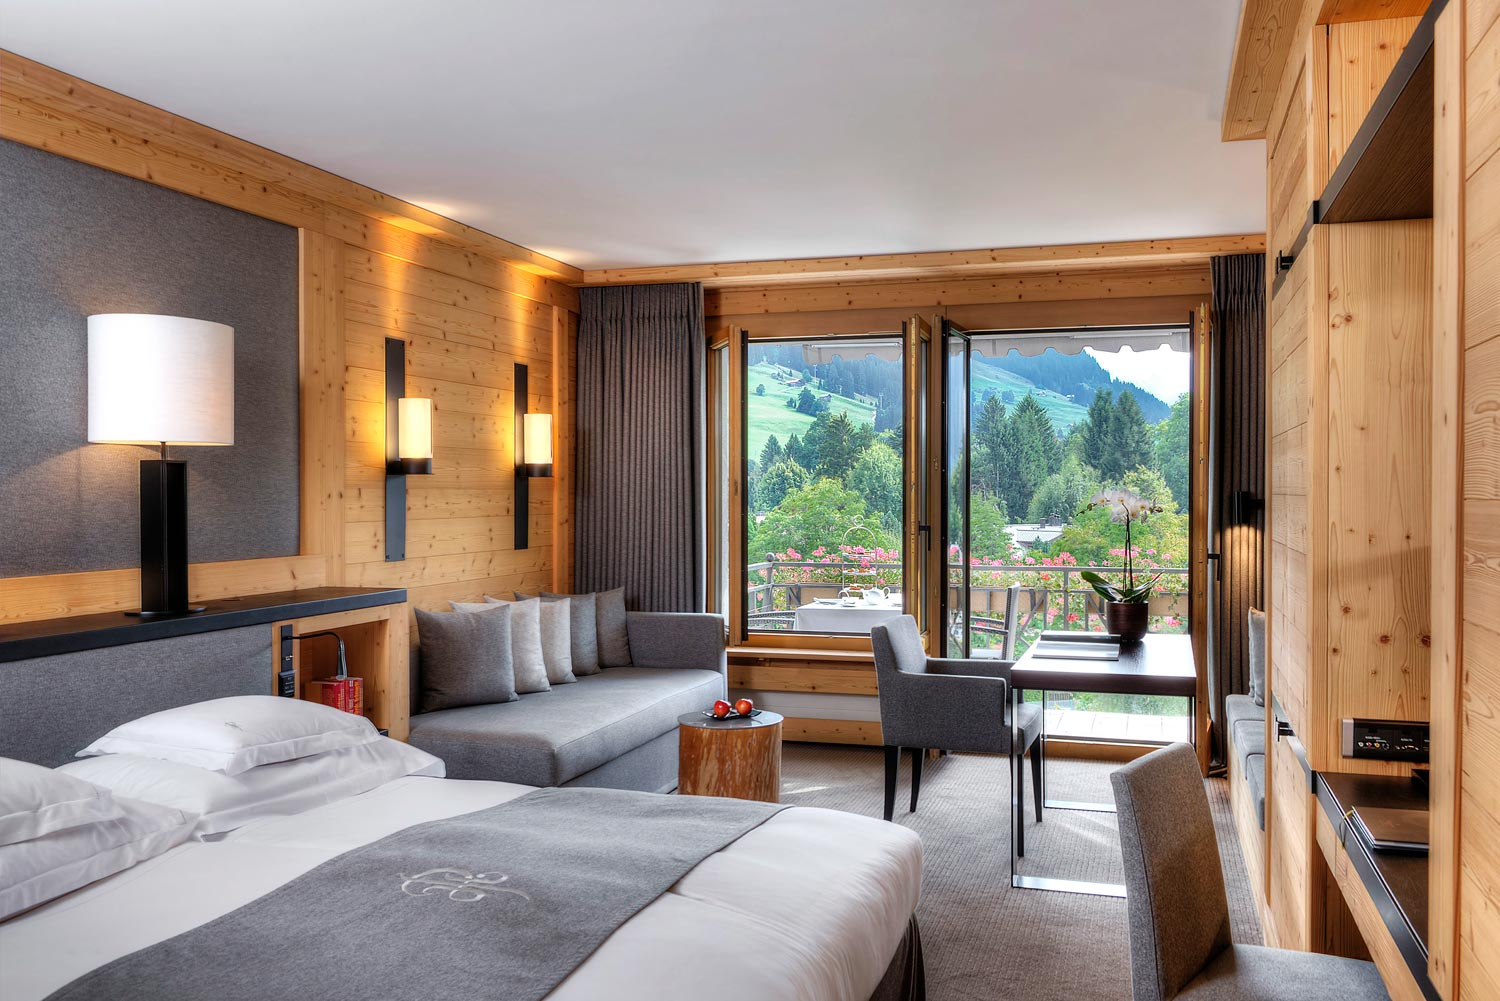 We Review Park Gstaad Hotel - 'The Last Paradise in a Crazy World' 10